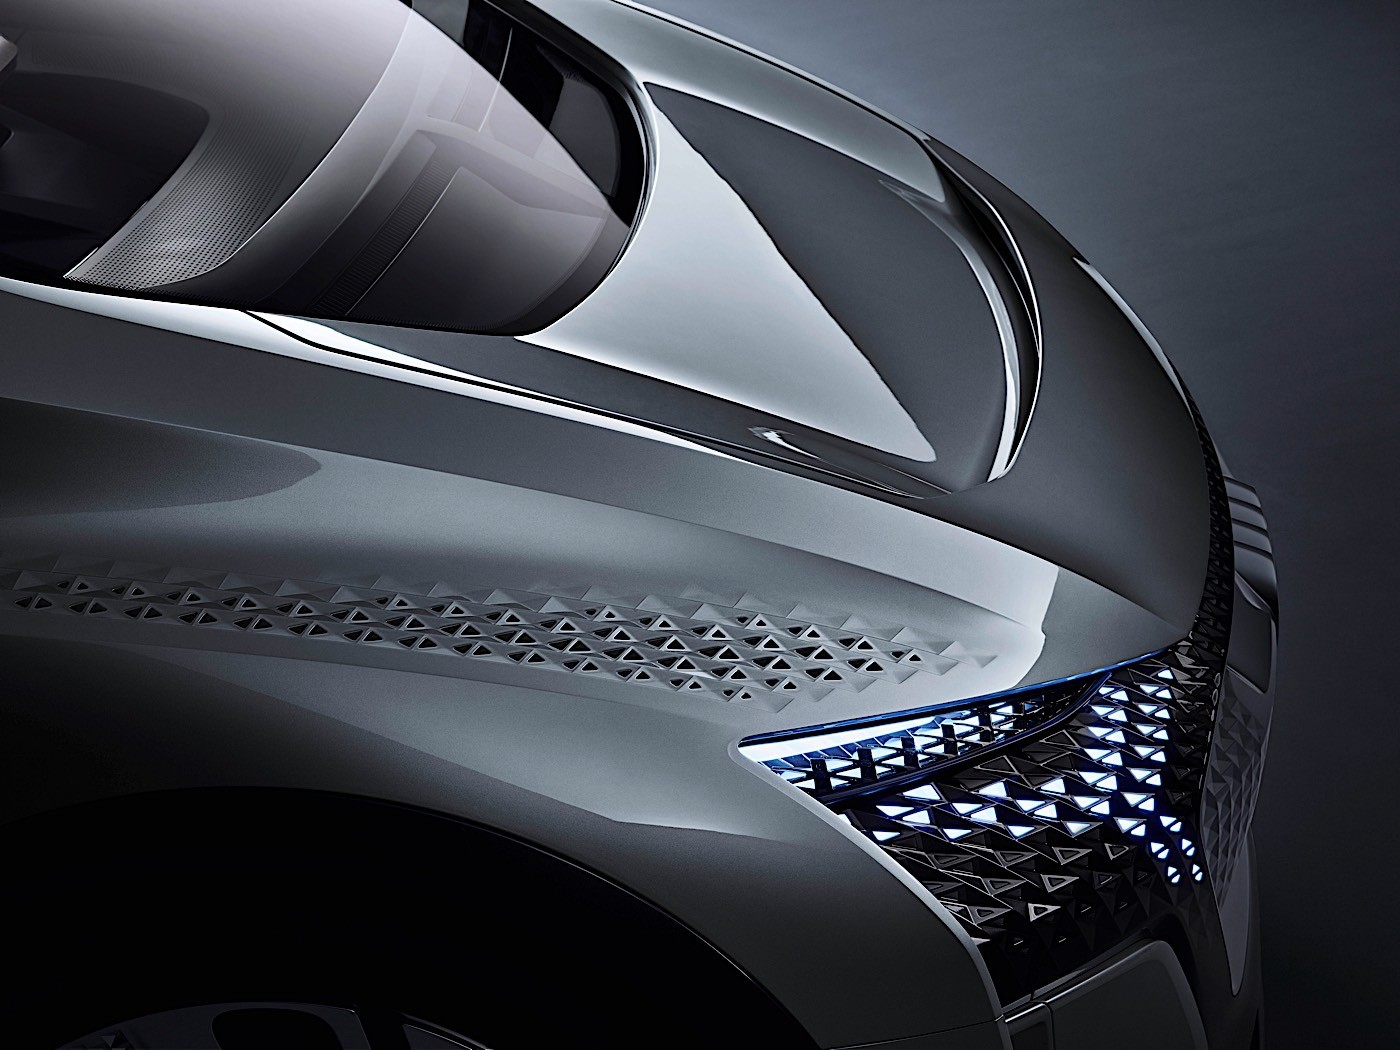 Audi Shows Artificial Intelligence Car With Eye Controlled